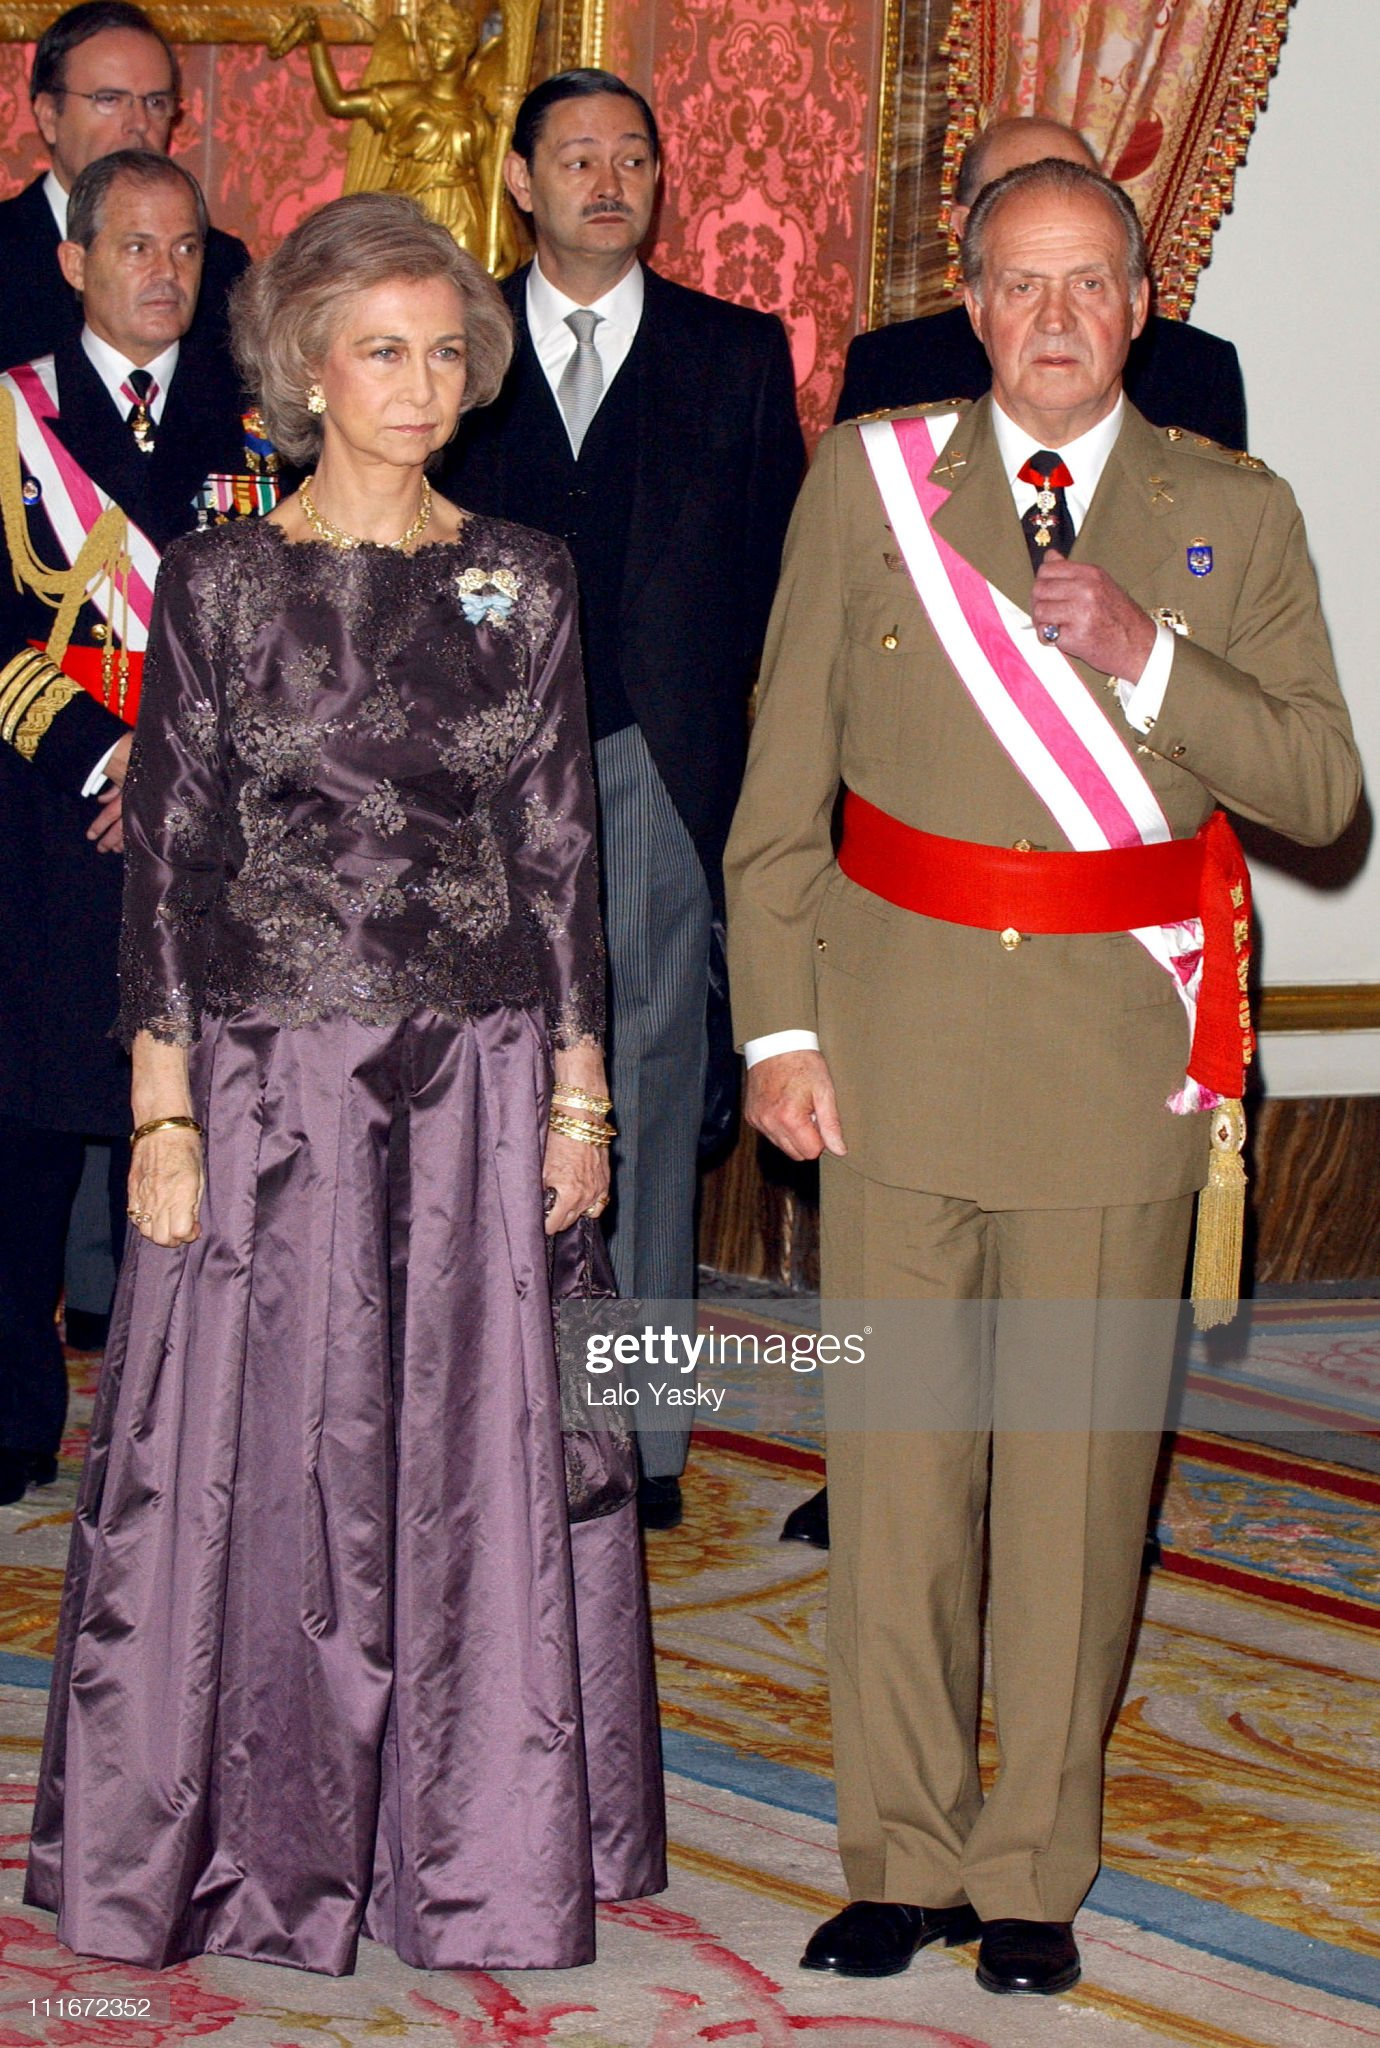 Spanish Royals Celebrates Militar Pasques With Gala Reception at The Royal Palace in Madrid : News Photo